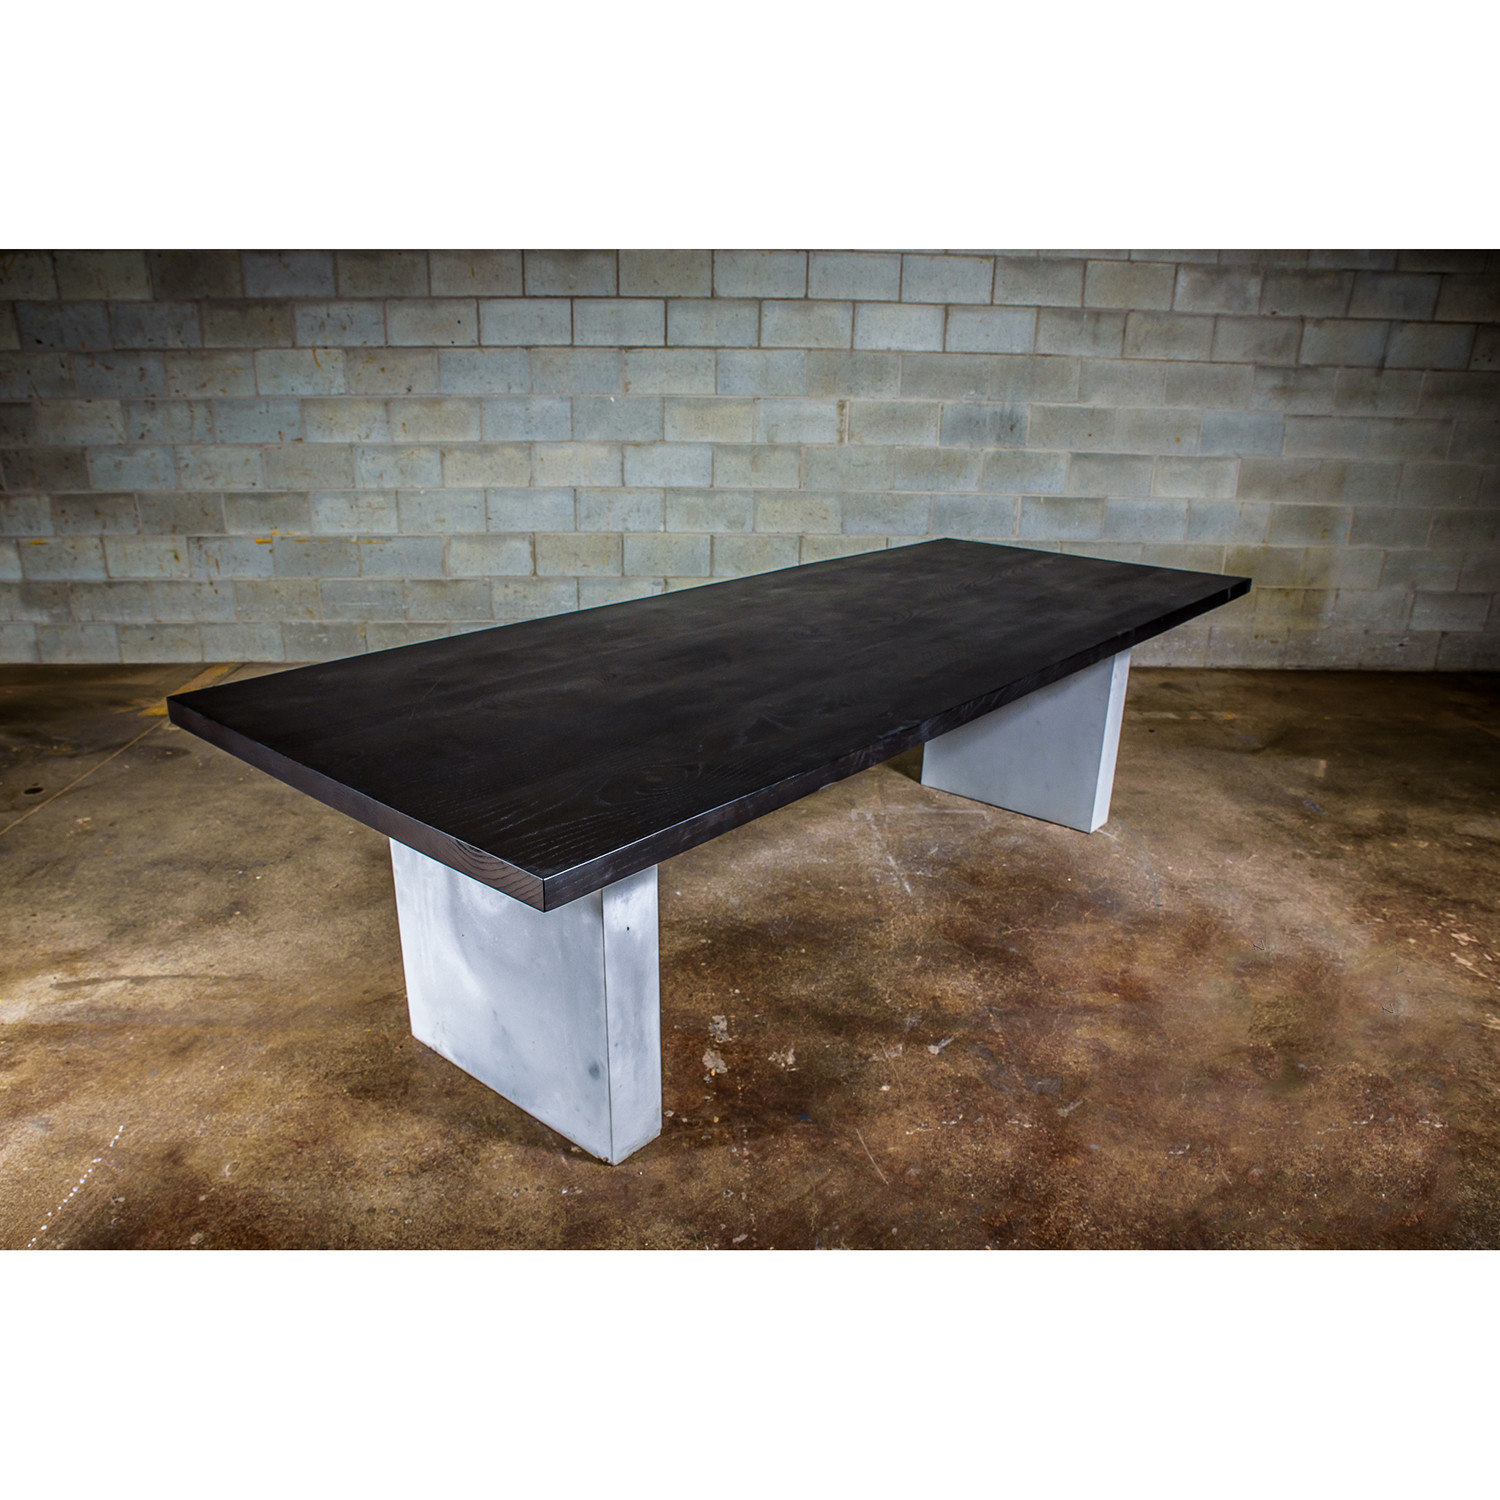 Dining Table Black Stained Ash Wood Concrete Legs 72